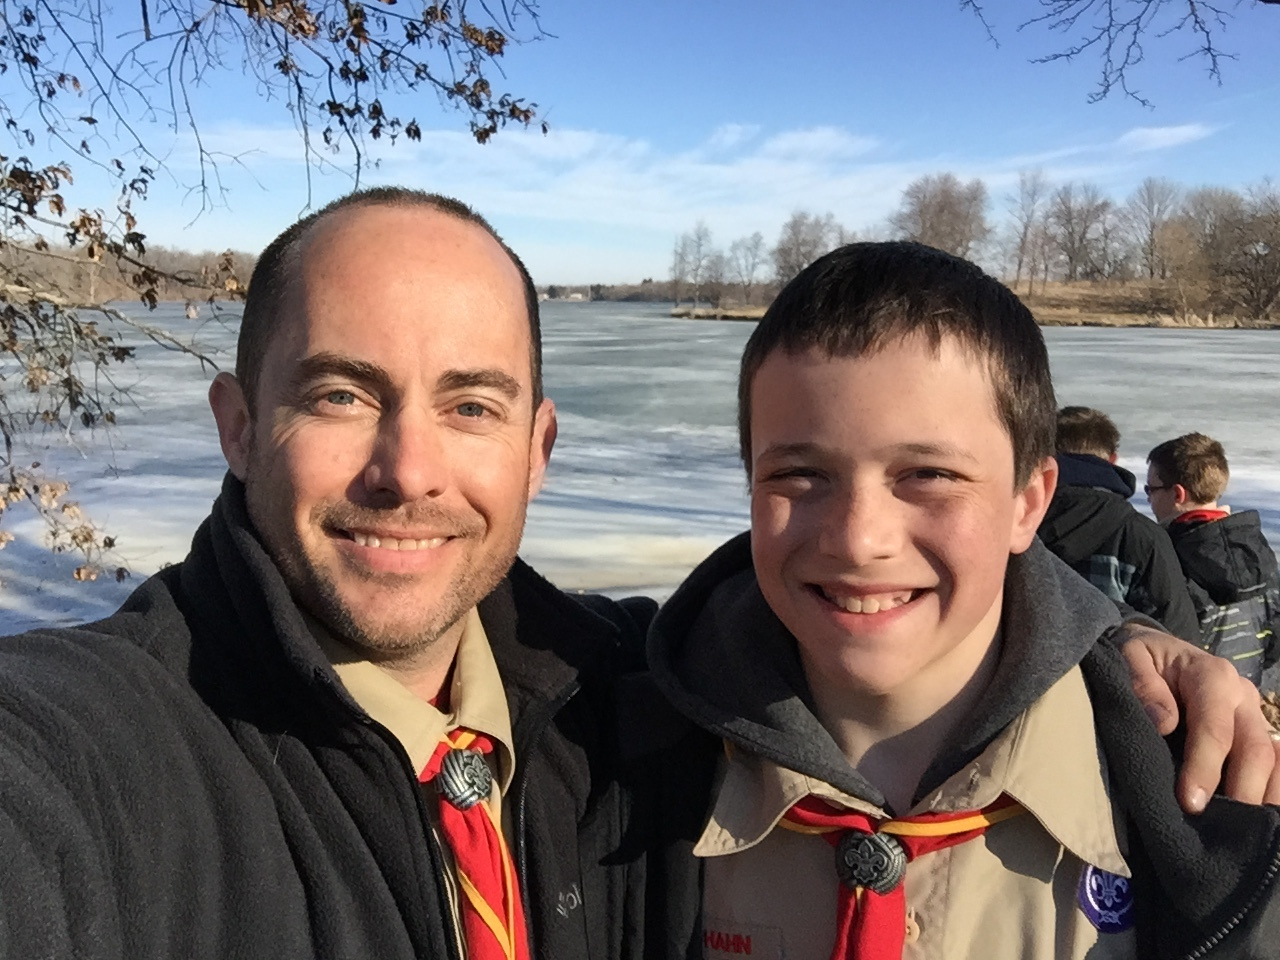 BillHahn-BoyScouts-Cade-At-Campout-Lake.JPG